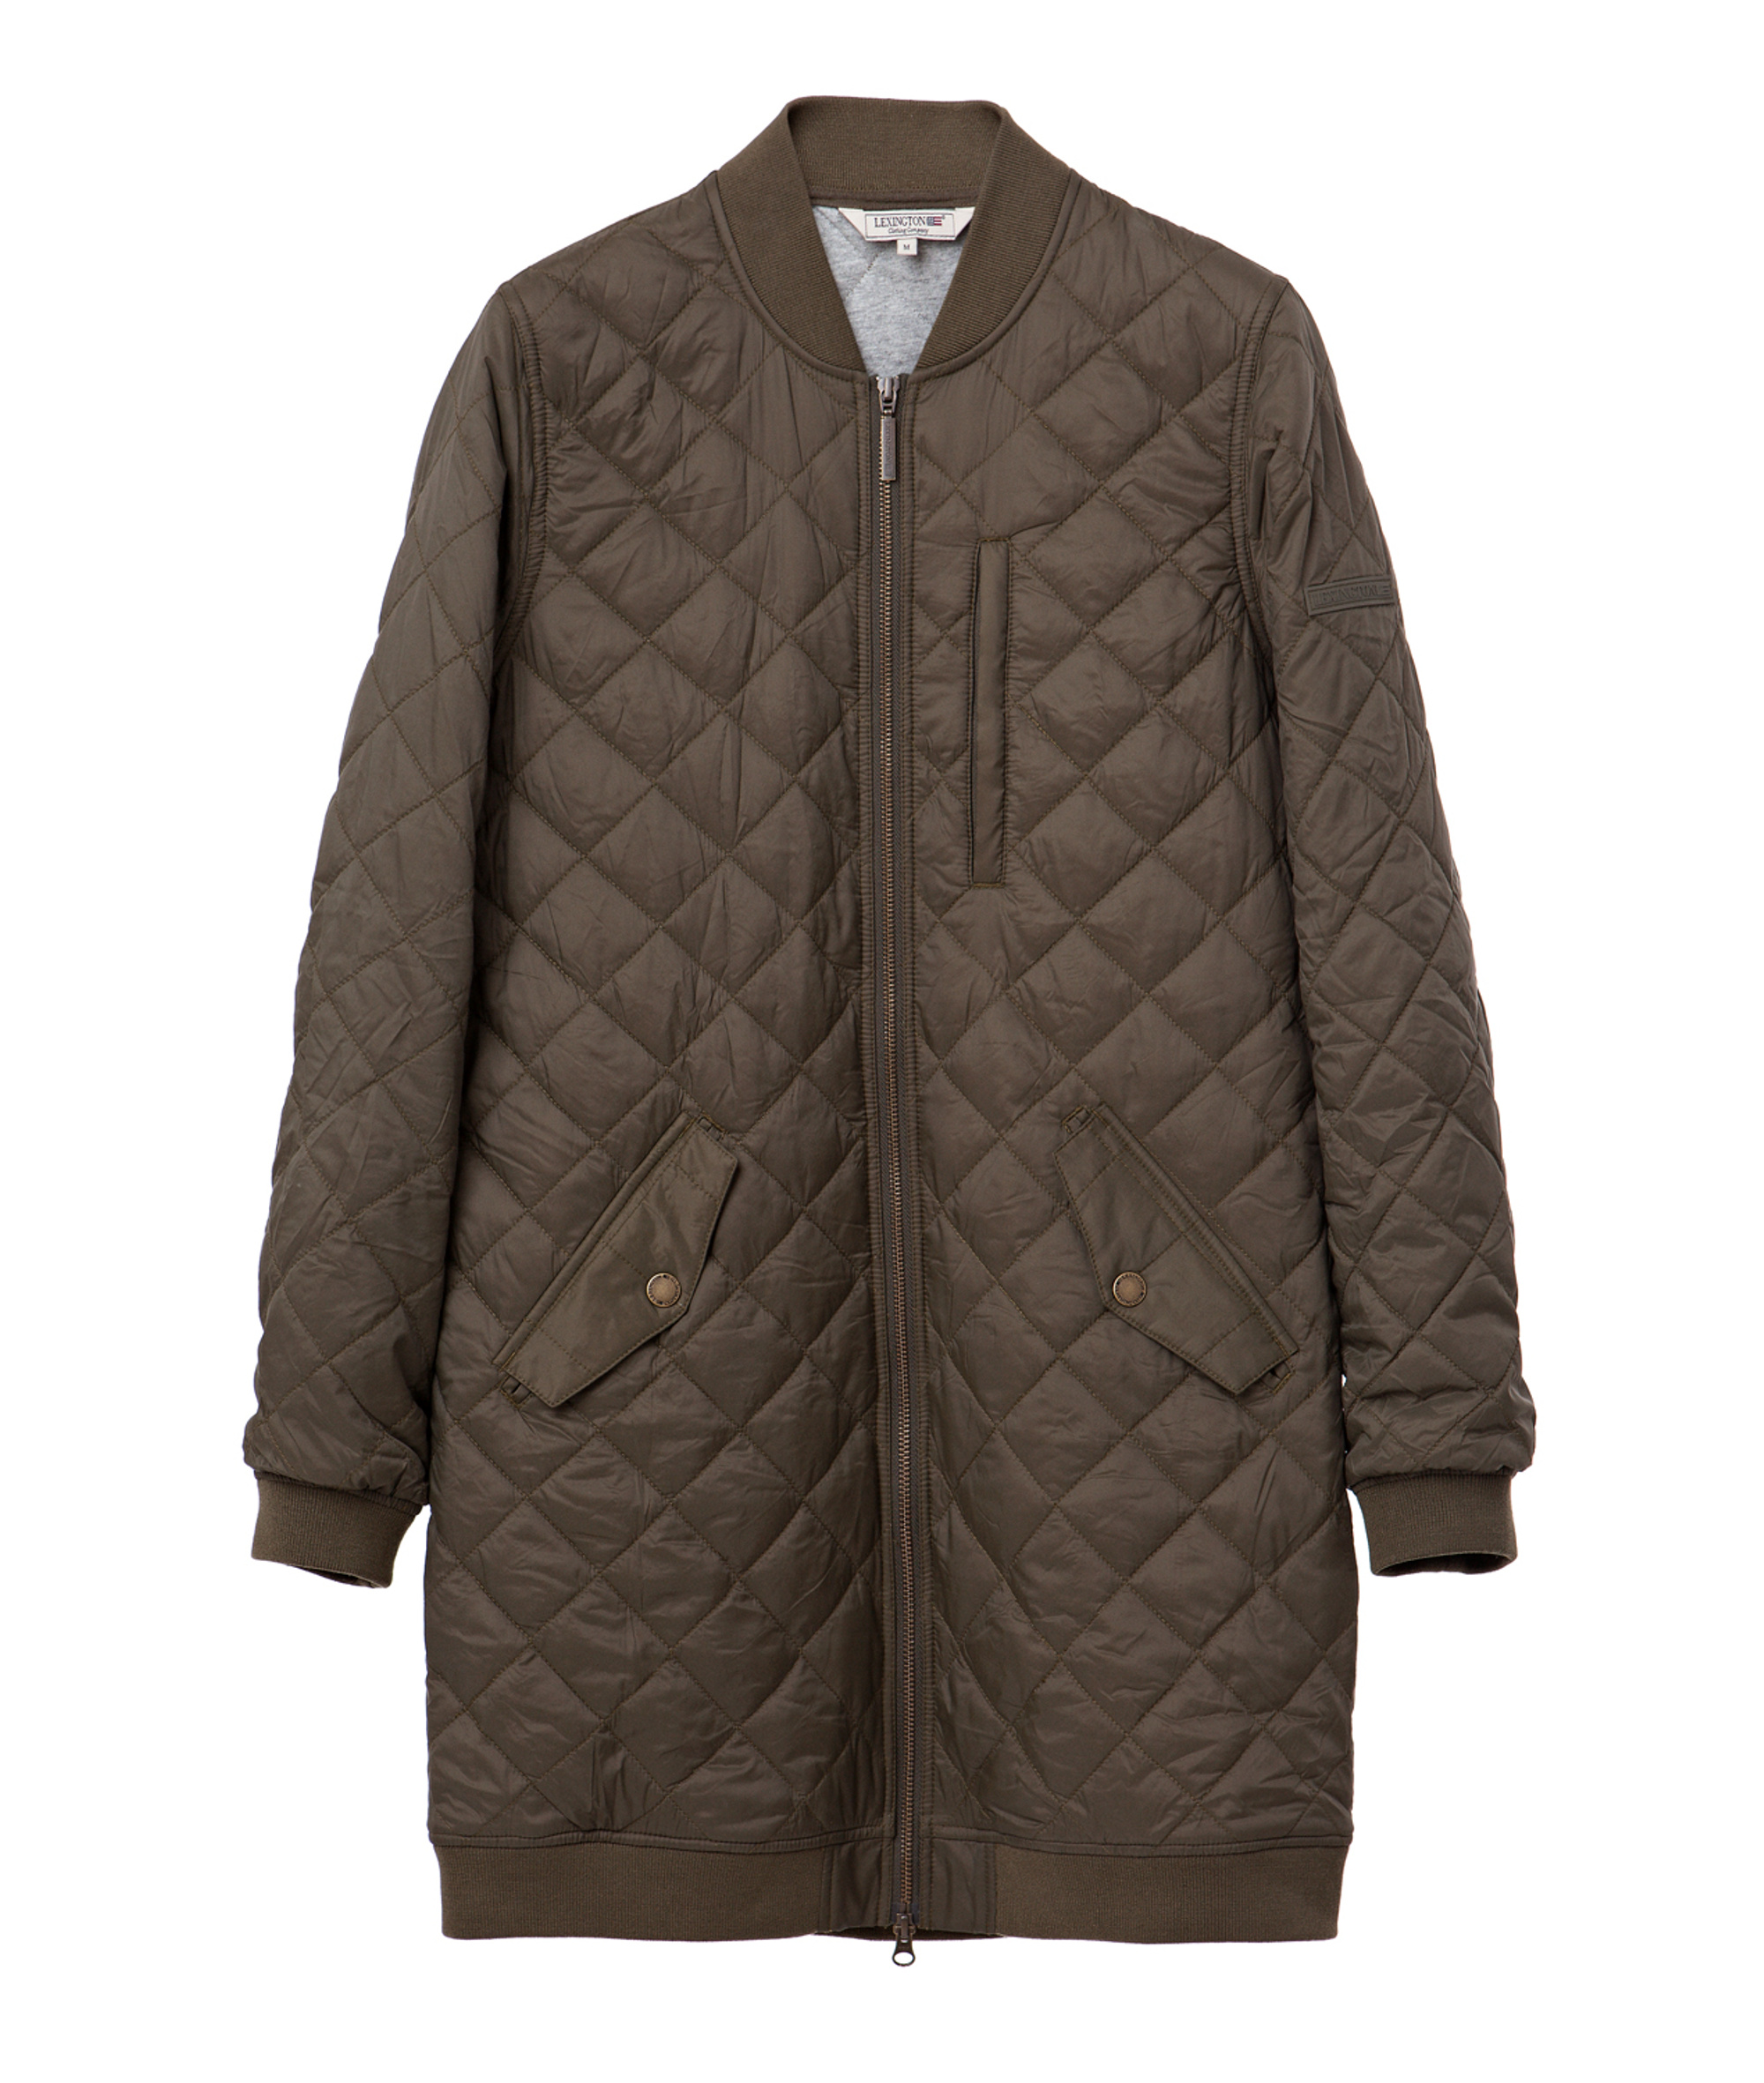 Quilted Jacket, Hunter Green : quilted jacket green - Adamdwight.com